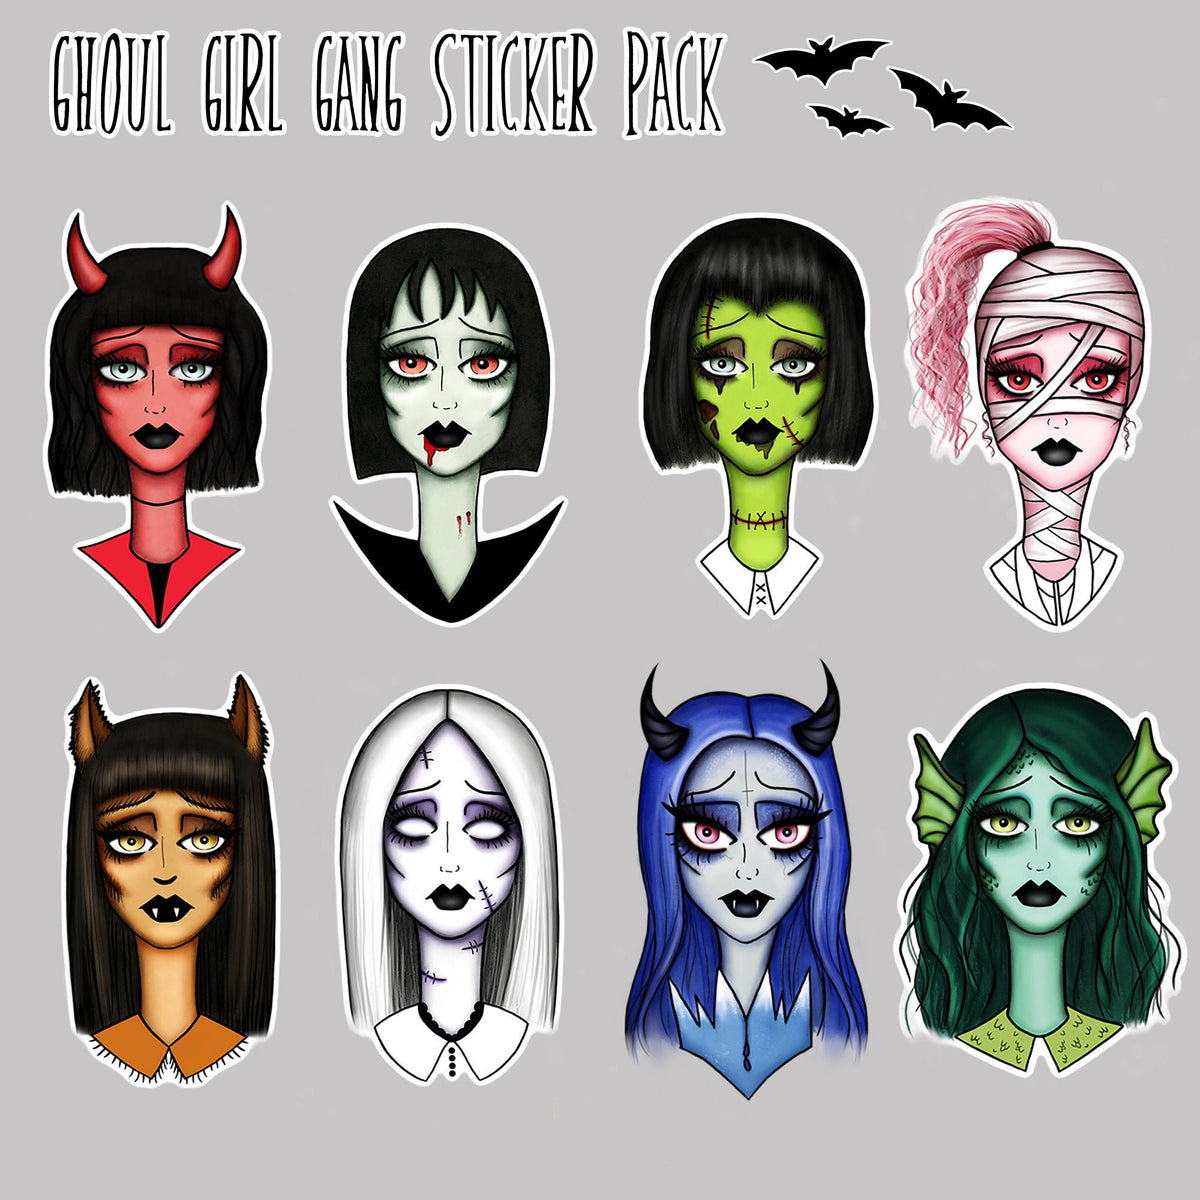 GHOUL GIRL GANG